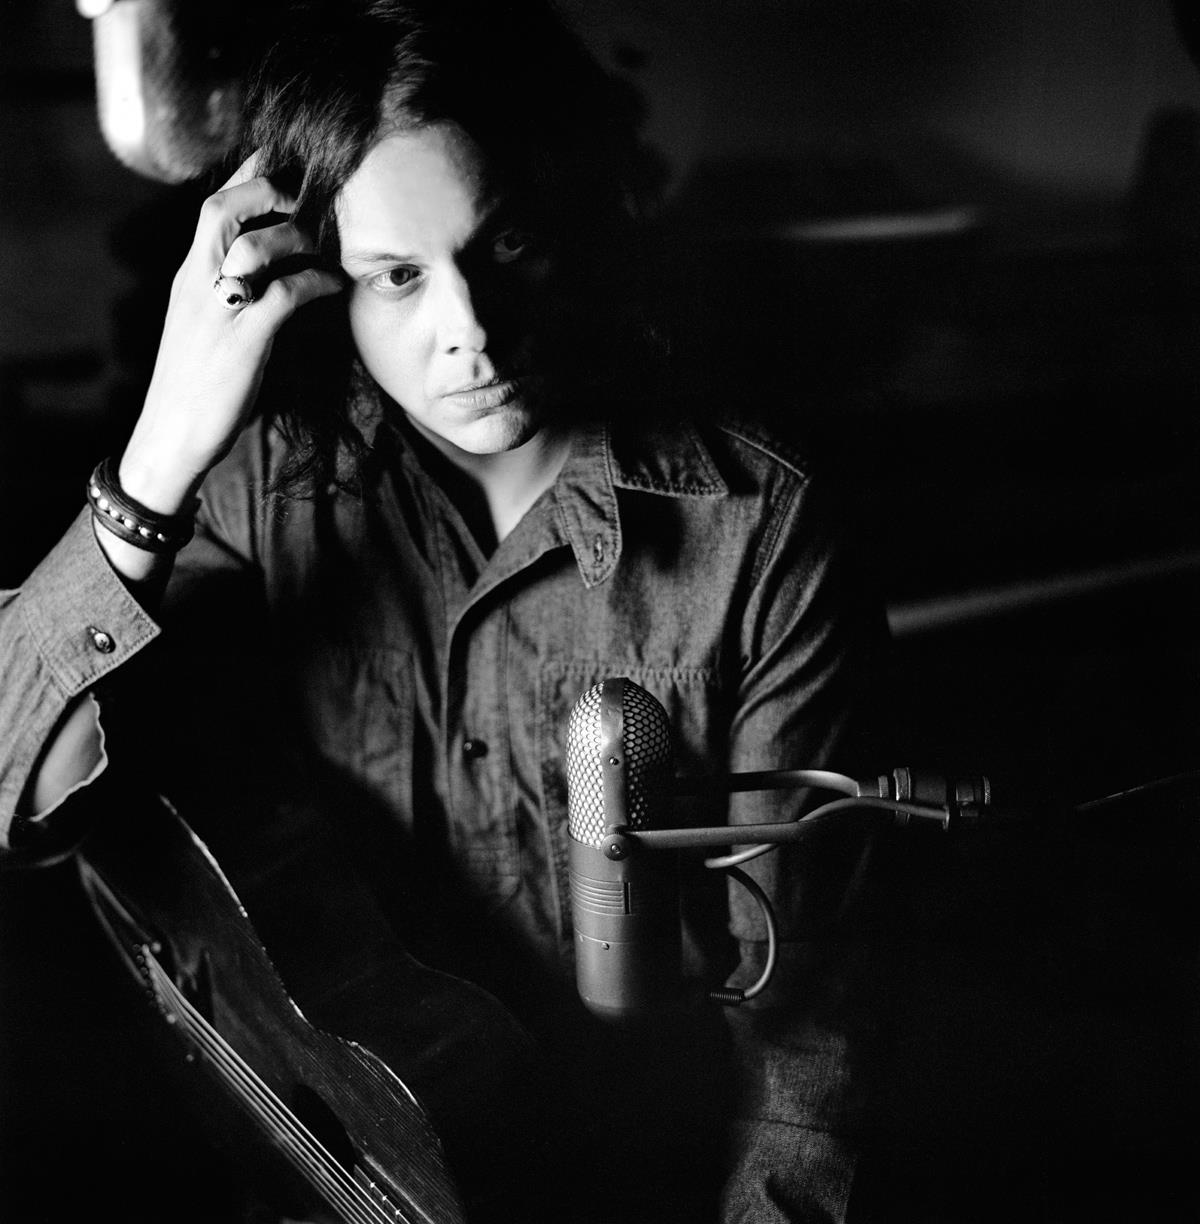 Jack White Ribbon Mic